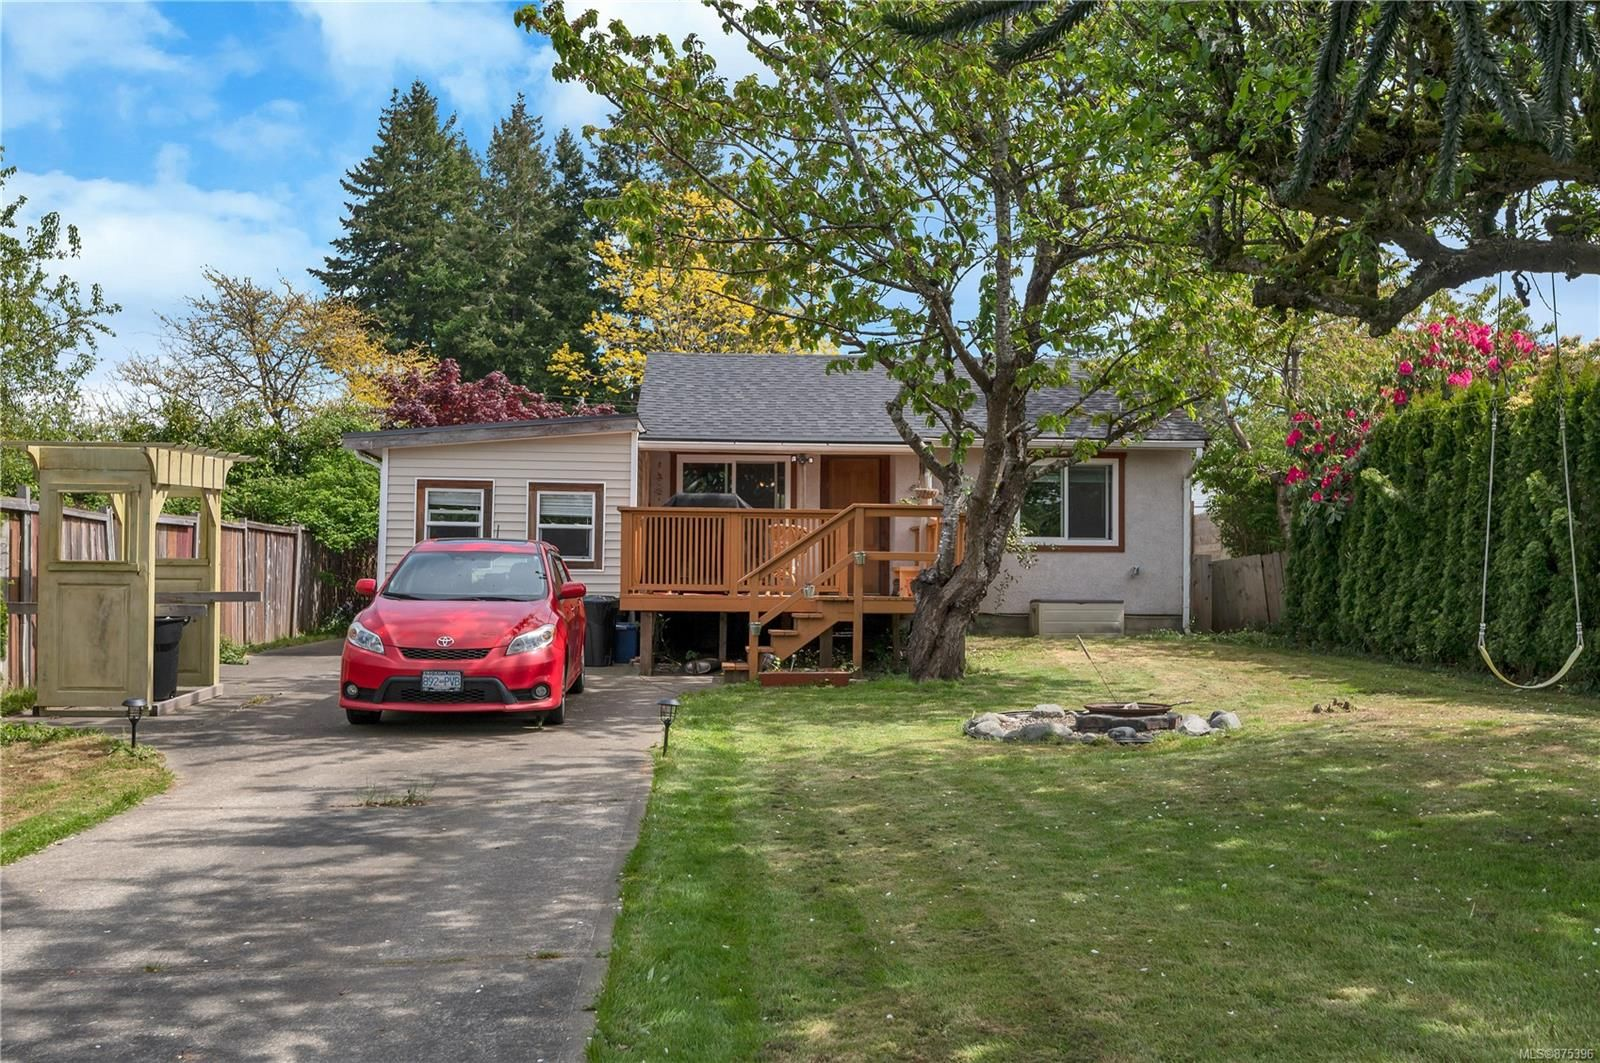 Main Photo: 961 Fir St in : CR Campbell River Central House for sale (Campbell River)  : MLS®# 875396